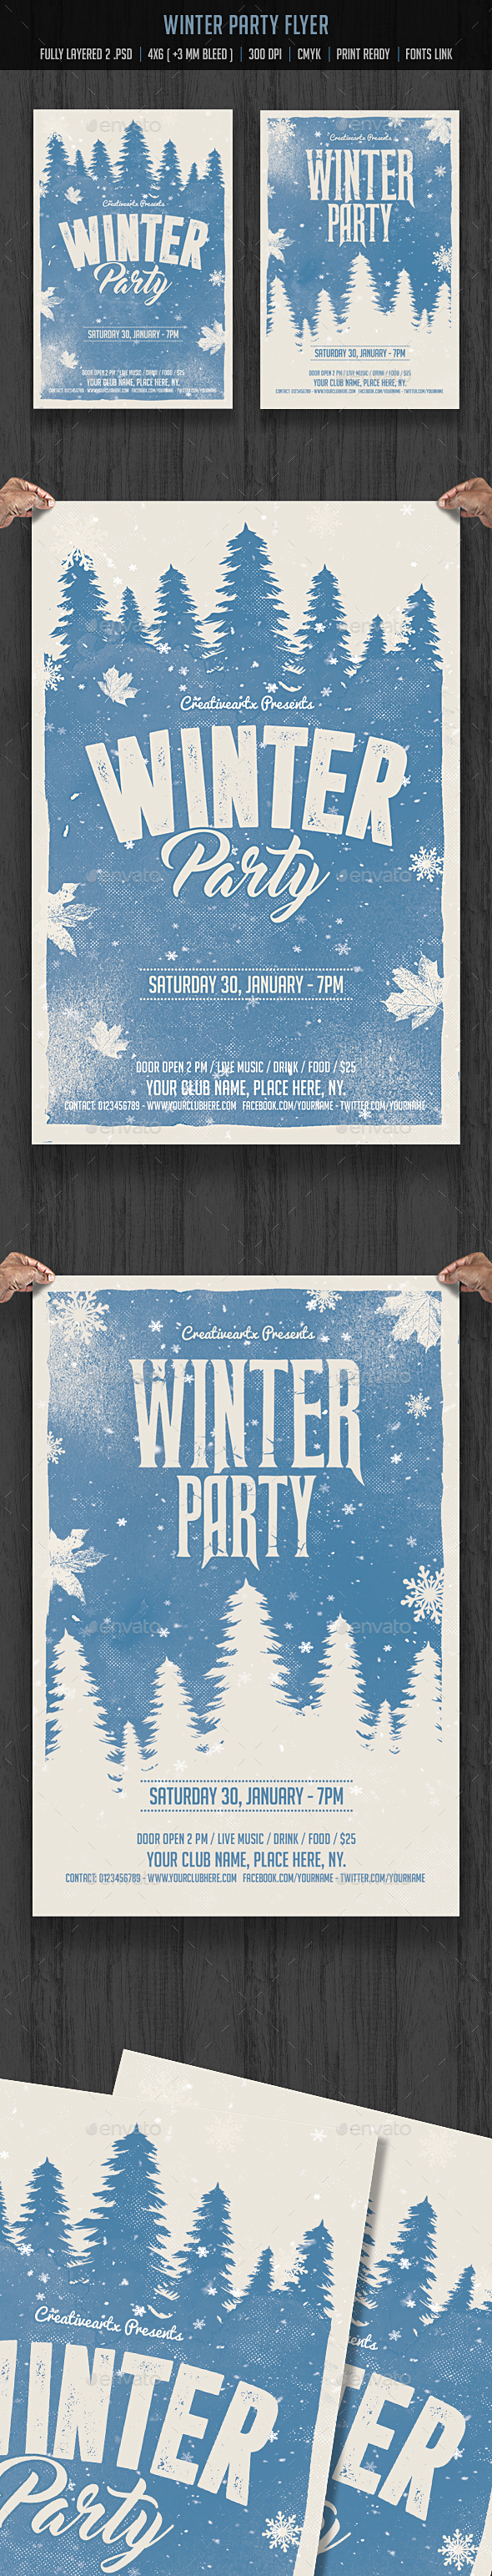 Winter Party Flyer - Flyers Print Templates